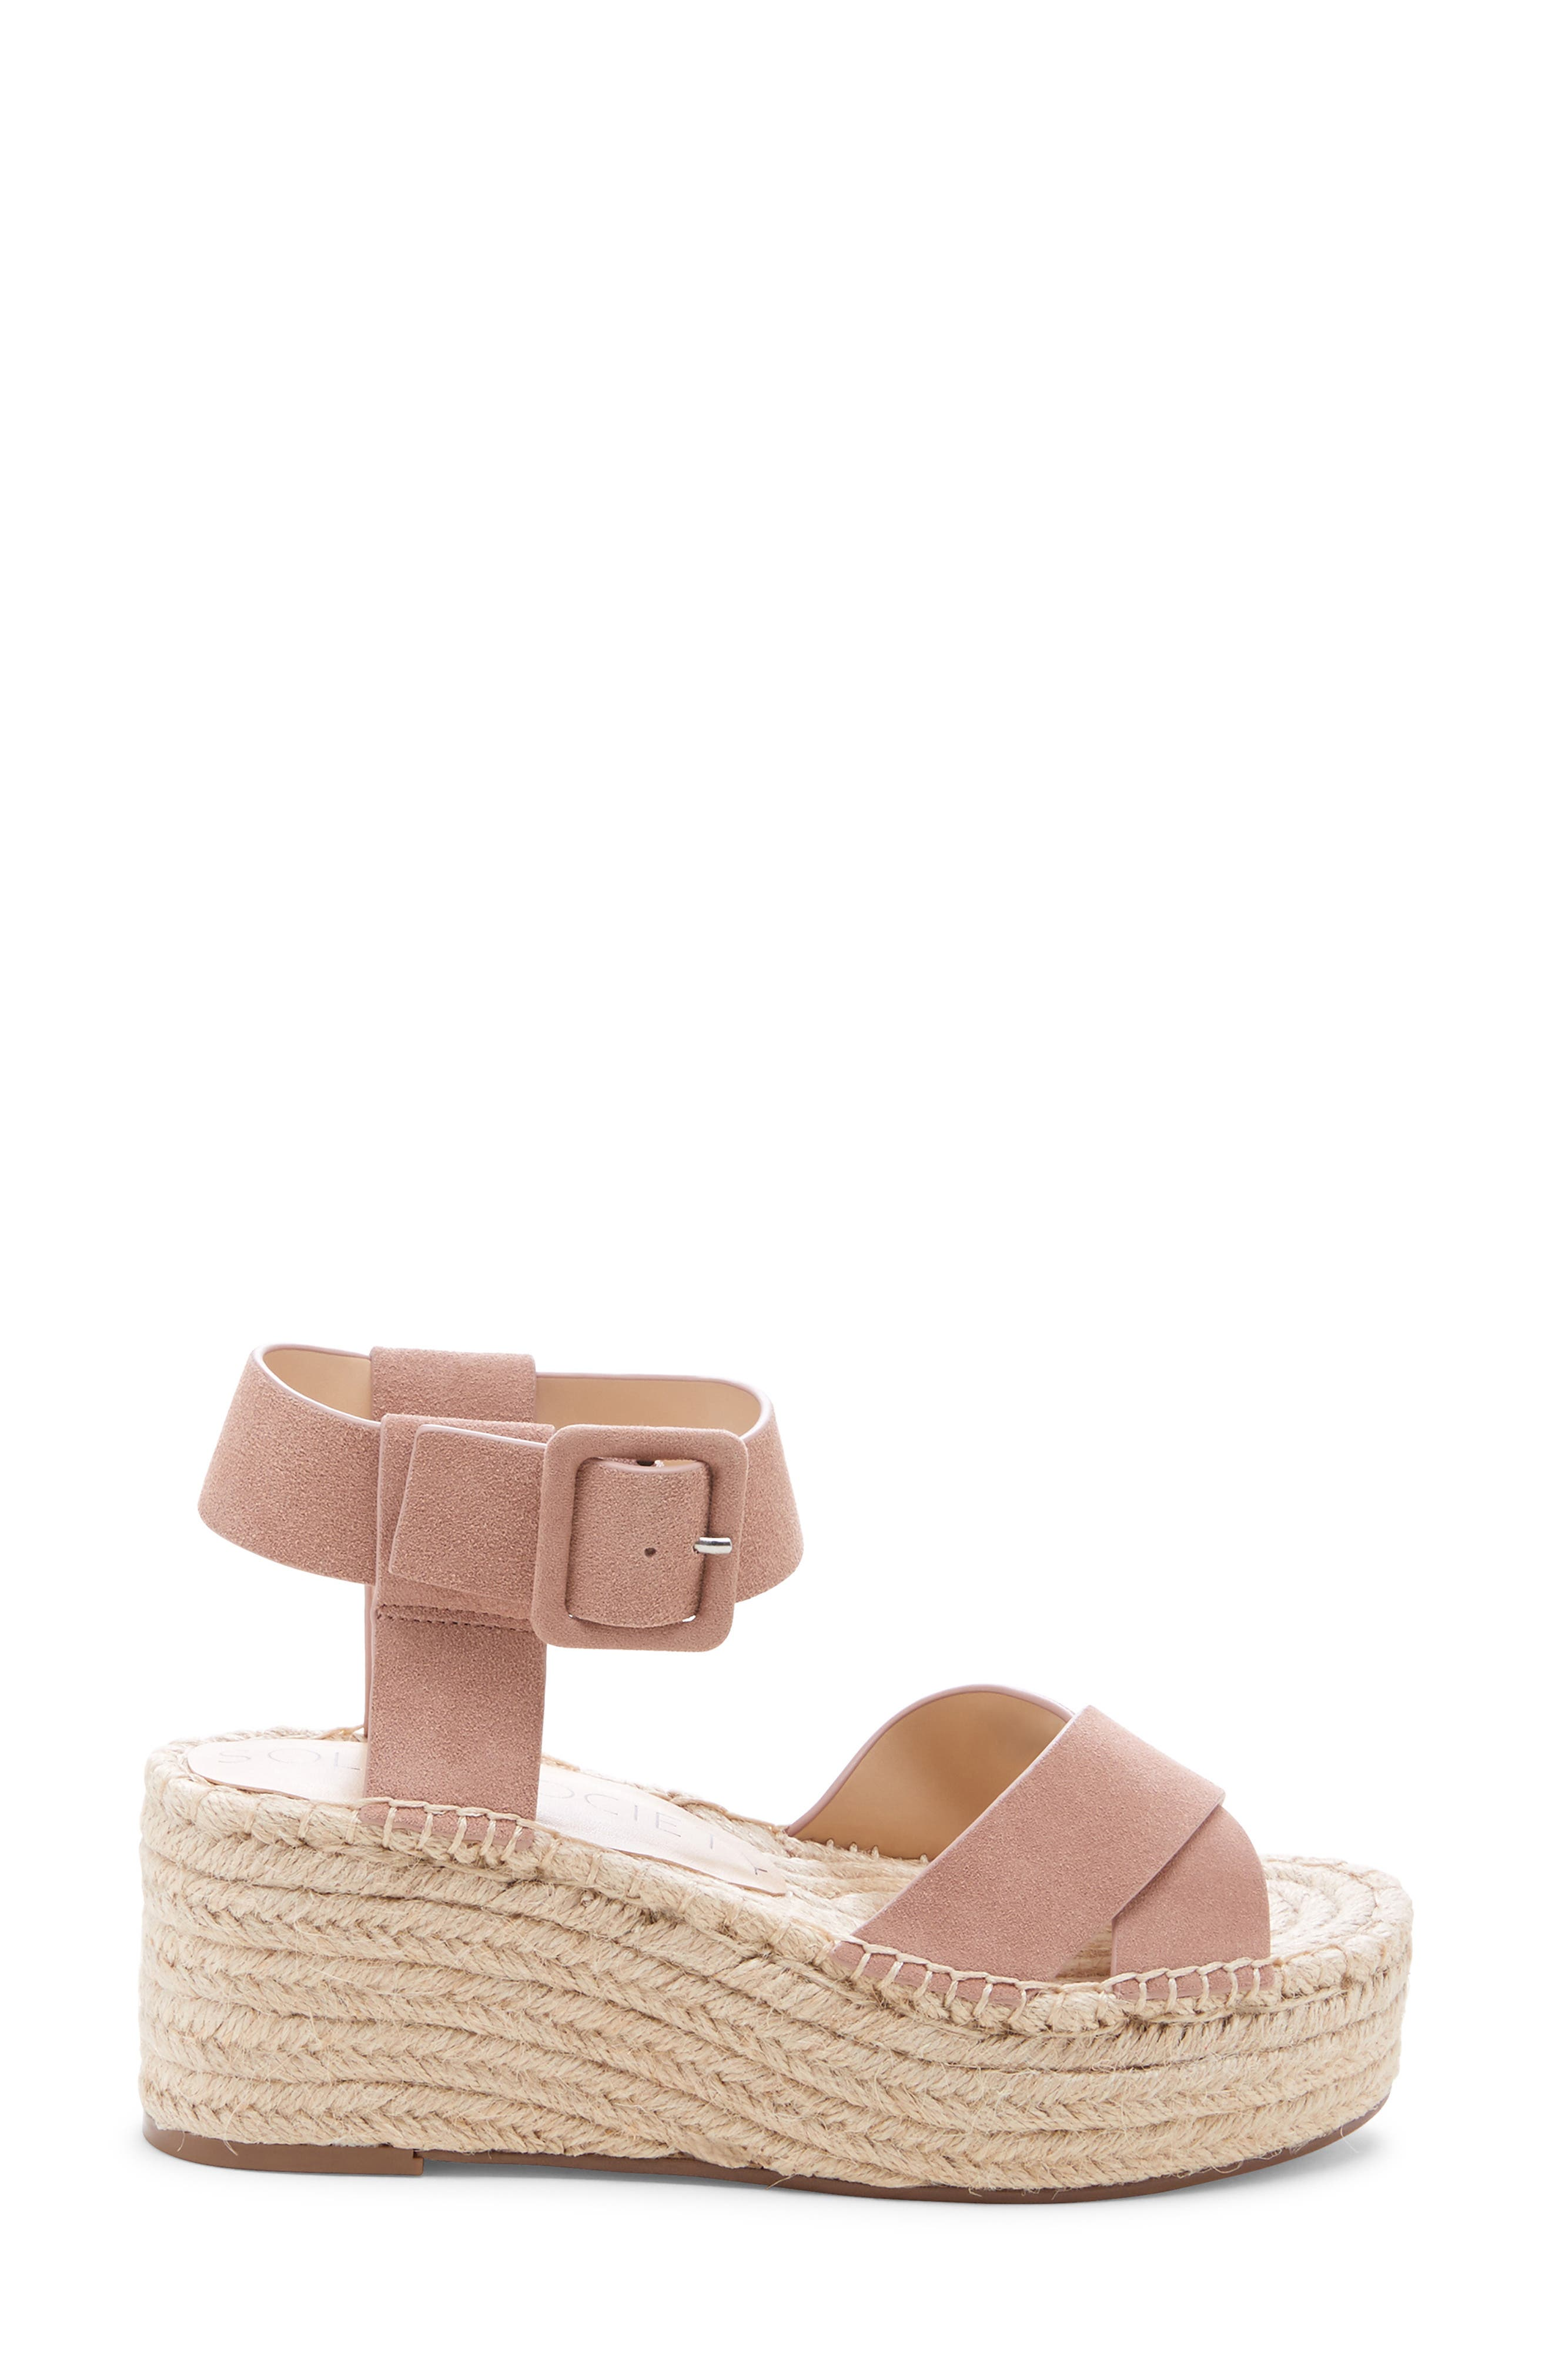 SOLE SOCIETY, Audrina Platform Espadrille Sandal, Alternate thumbnail 3, color, DUSTY ROSE SUEDE